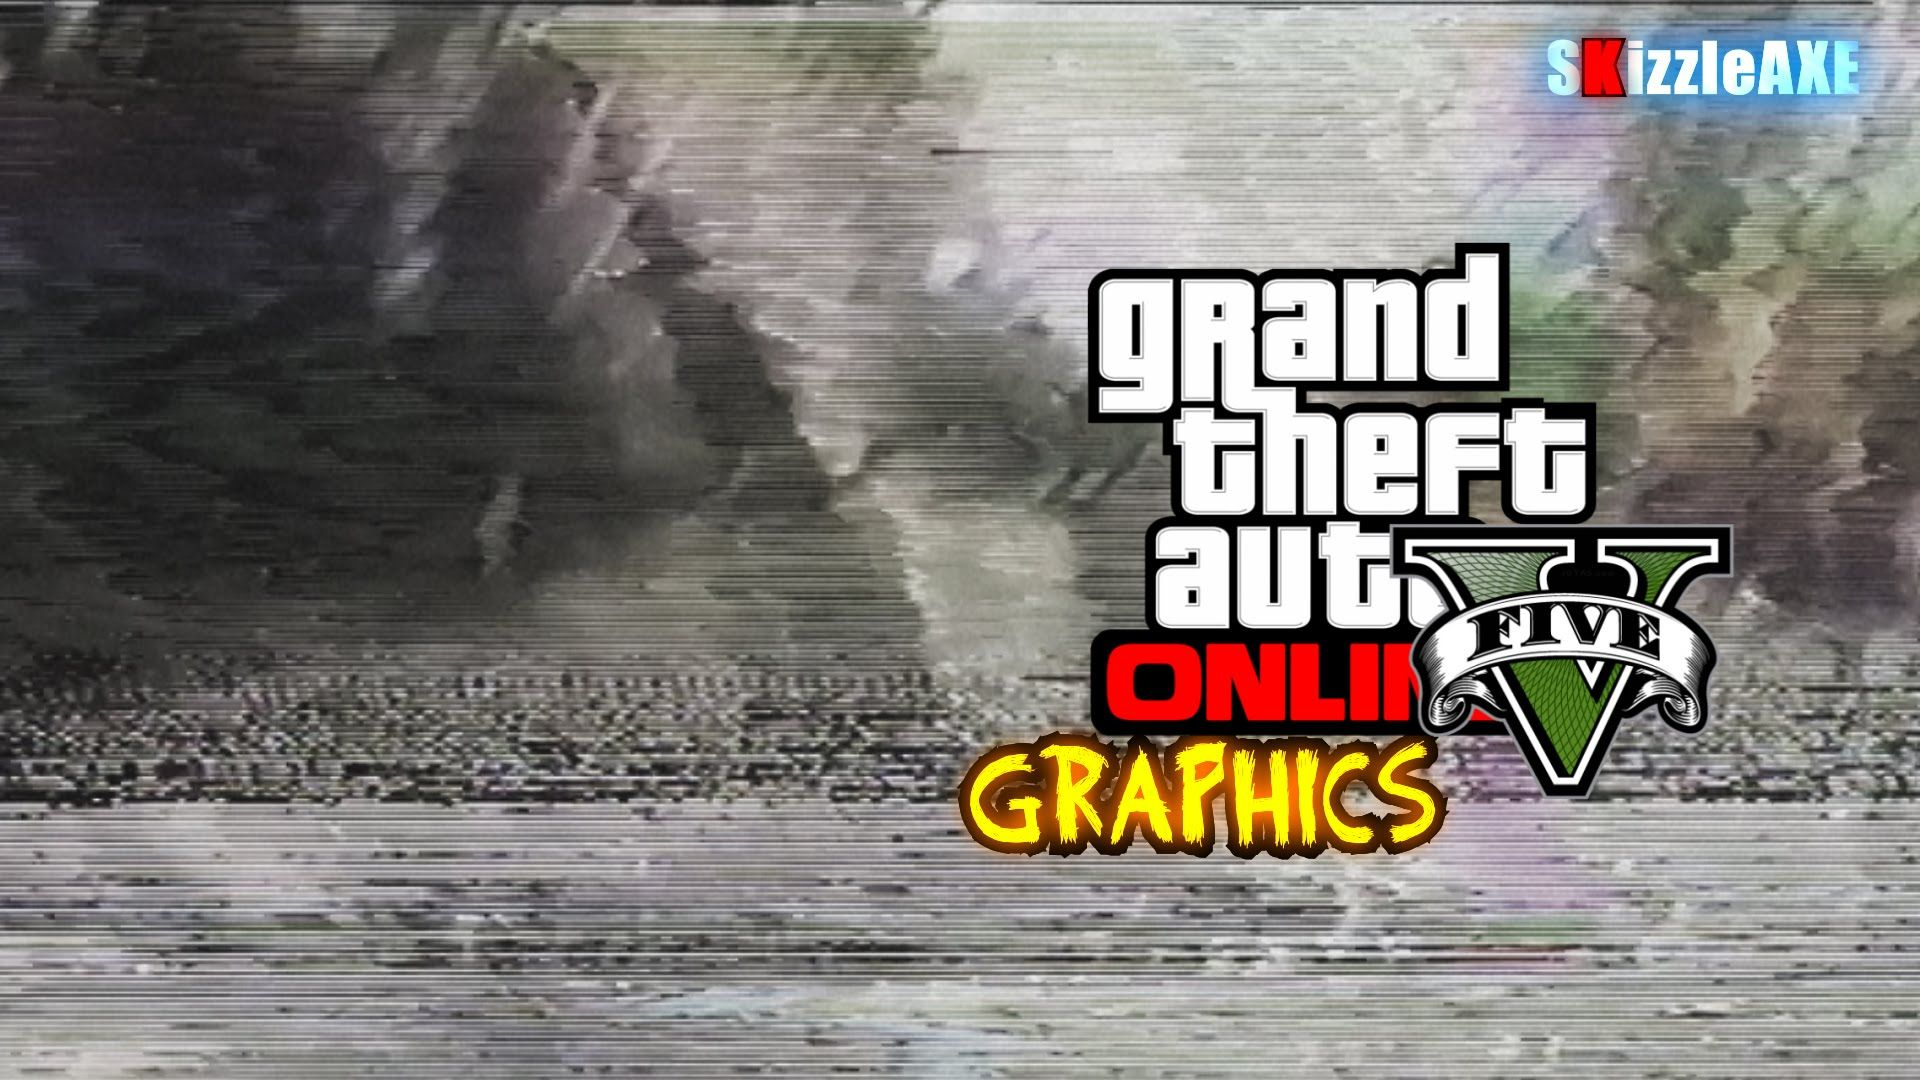 How To Get 3 Million Dollars In Gta 5 Online